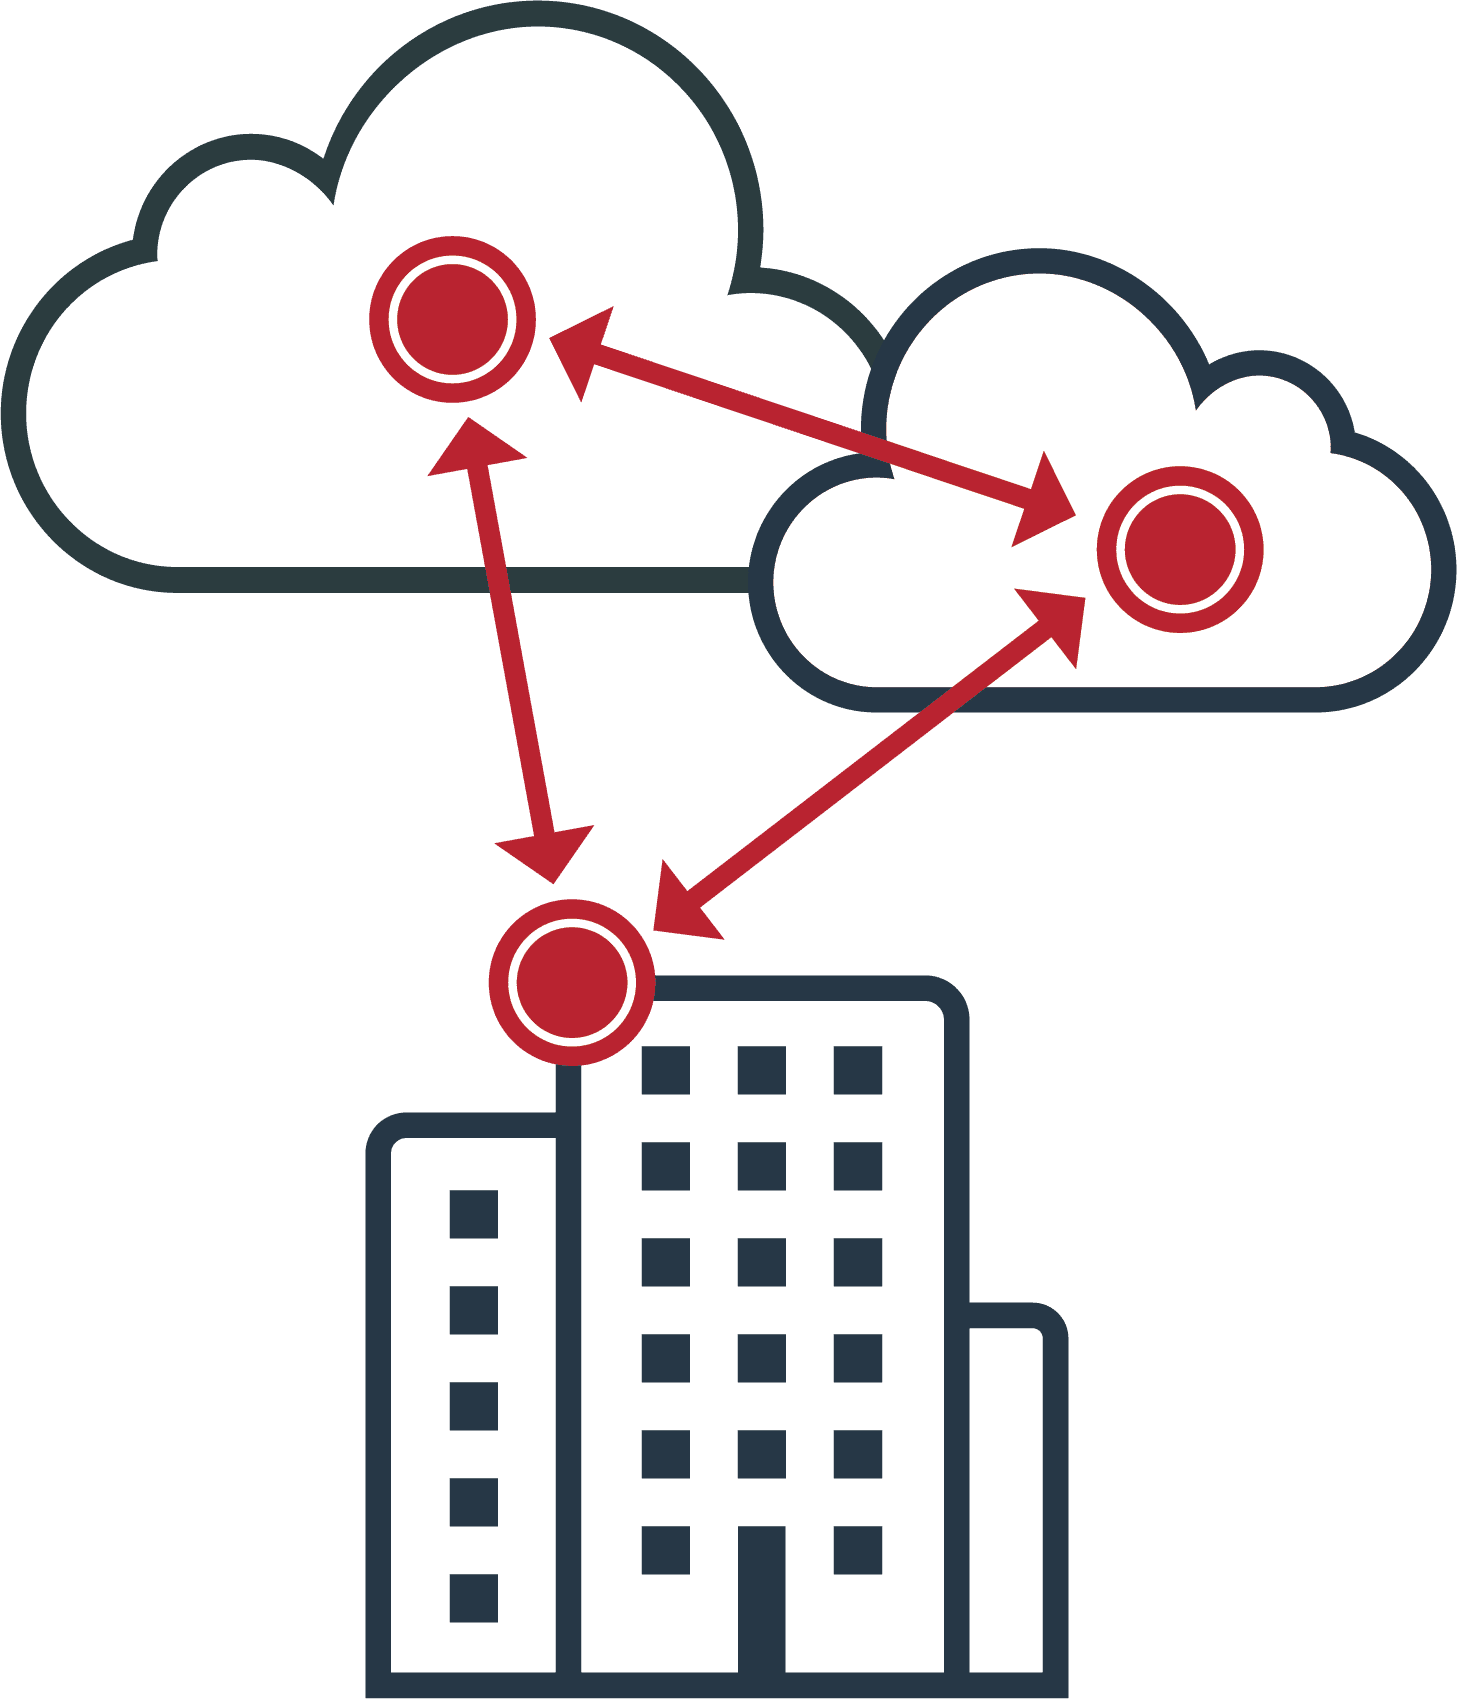 Diagram with large building and clouds